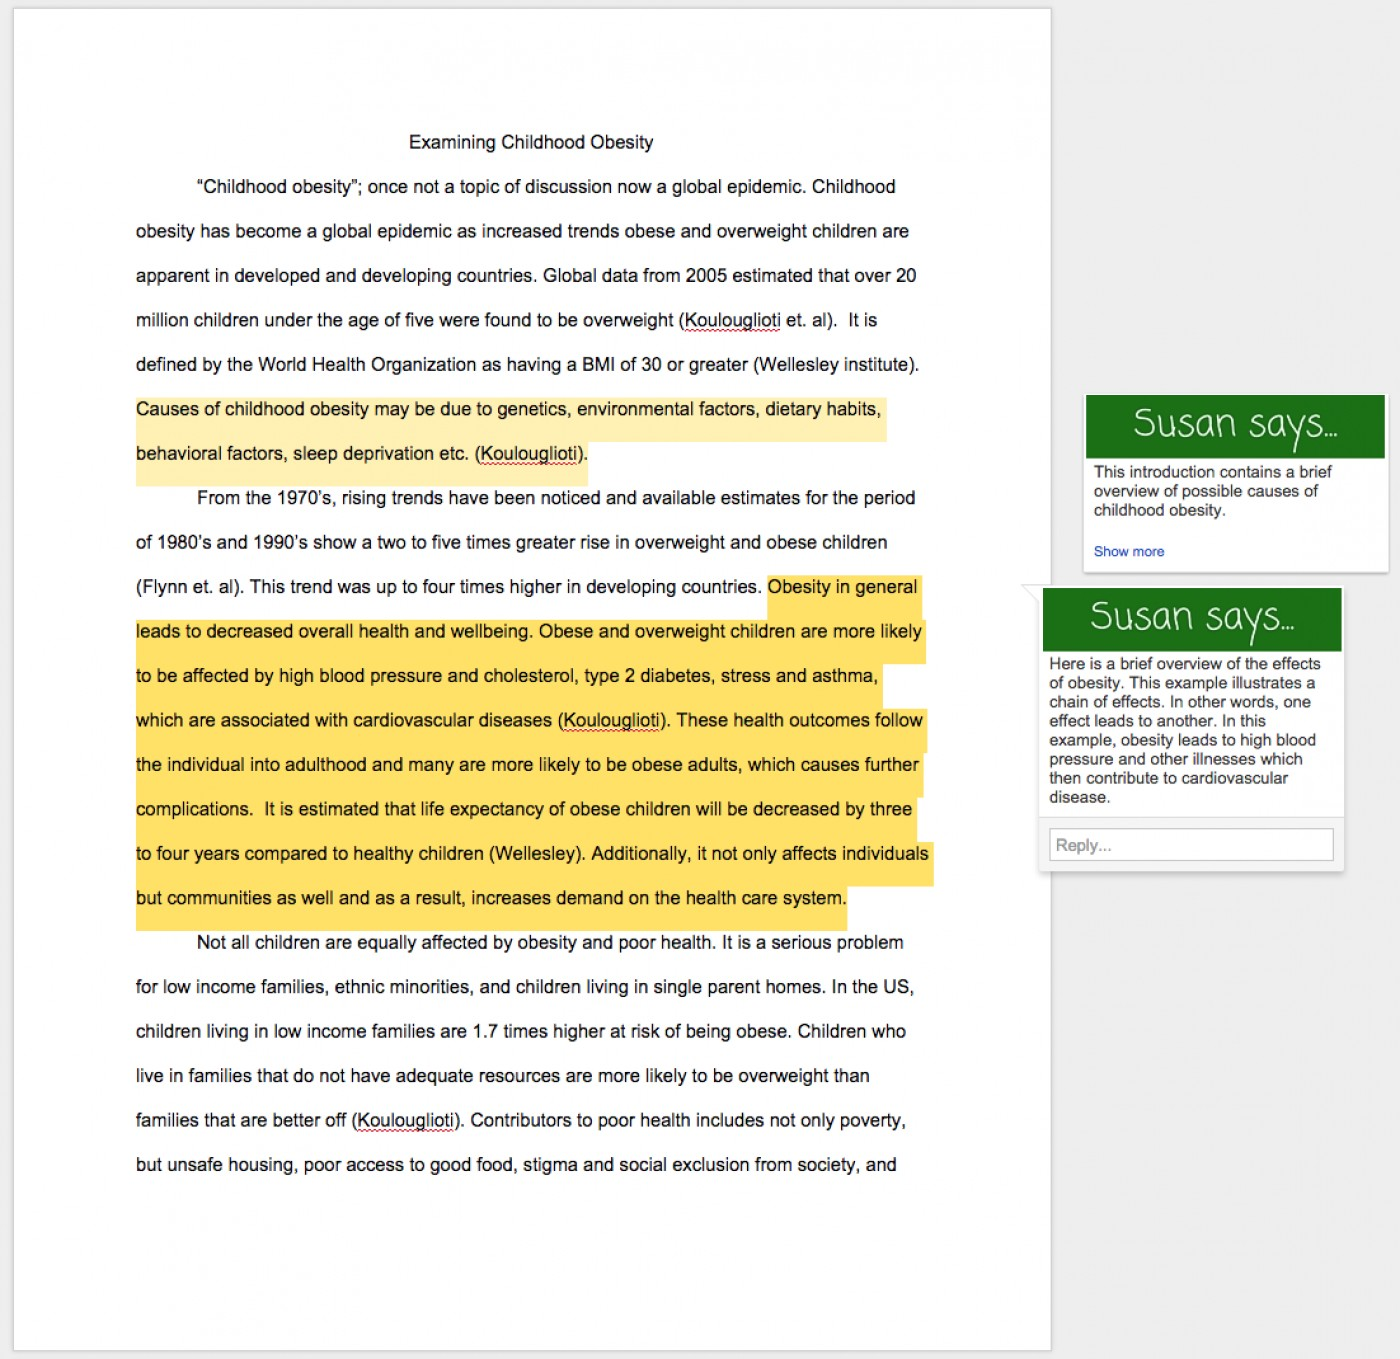 013 Obesity Essay Help Research Paper Childhood Amazing Thesis Statement 1400